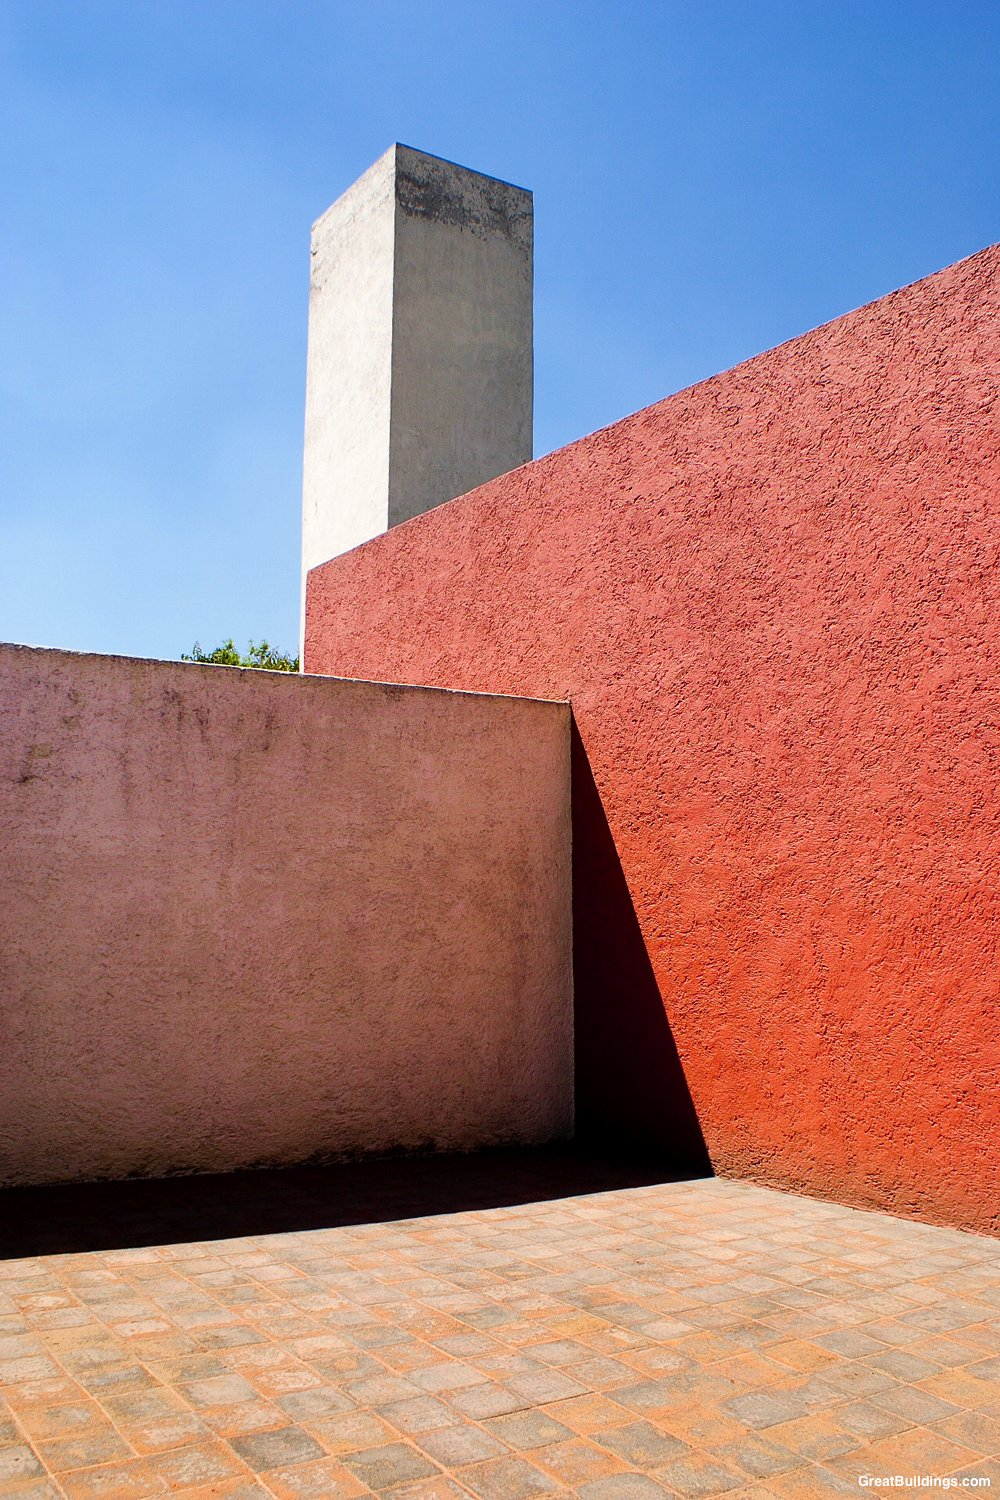 Luis Barragan. Color inspiration for the day.